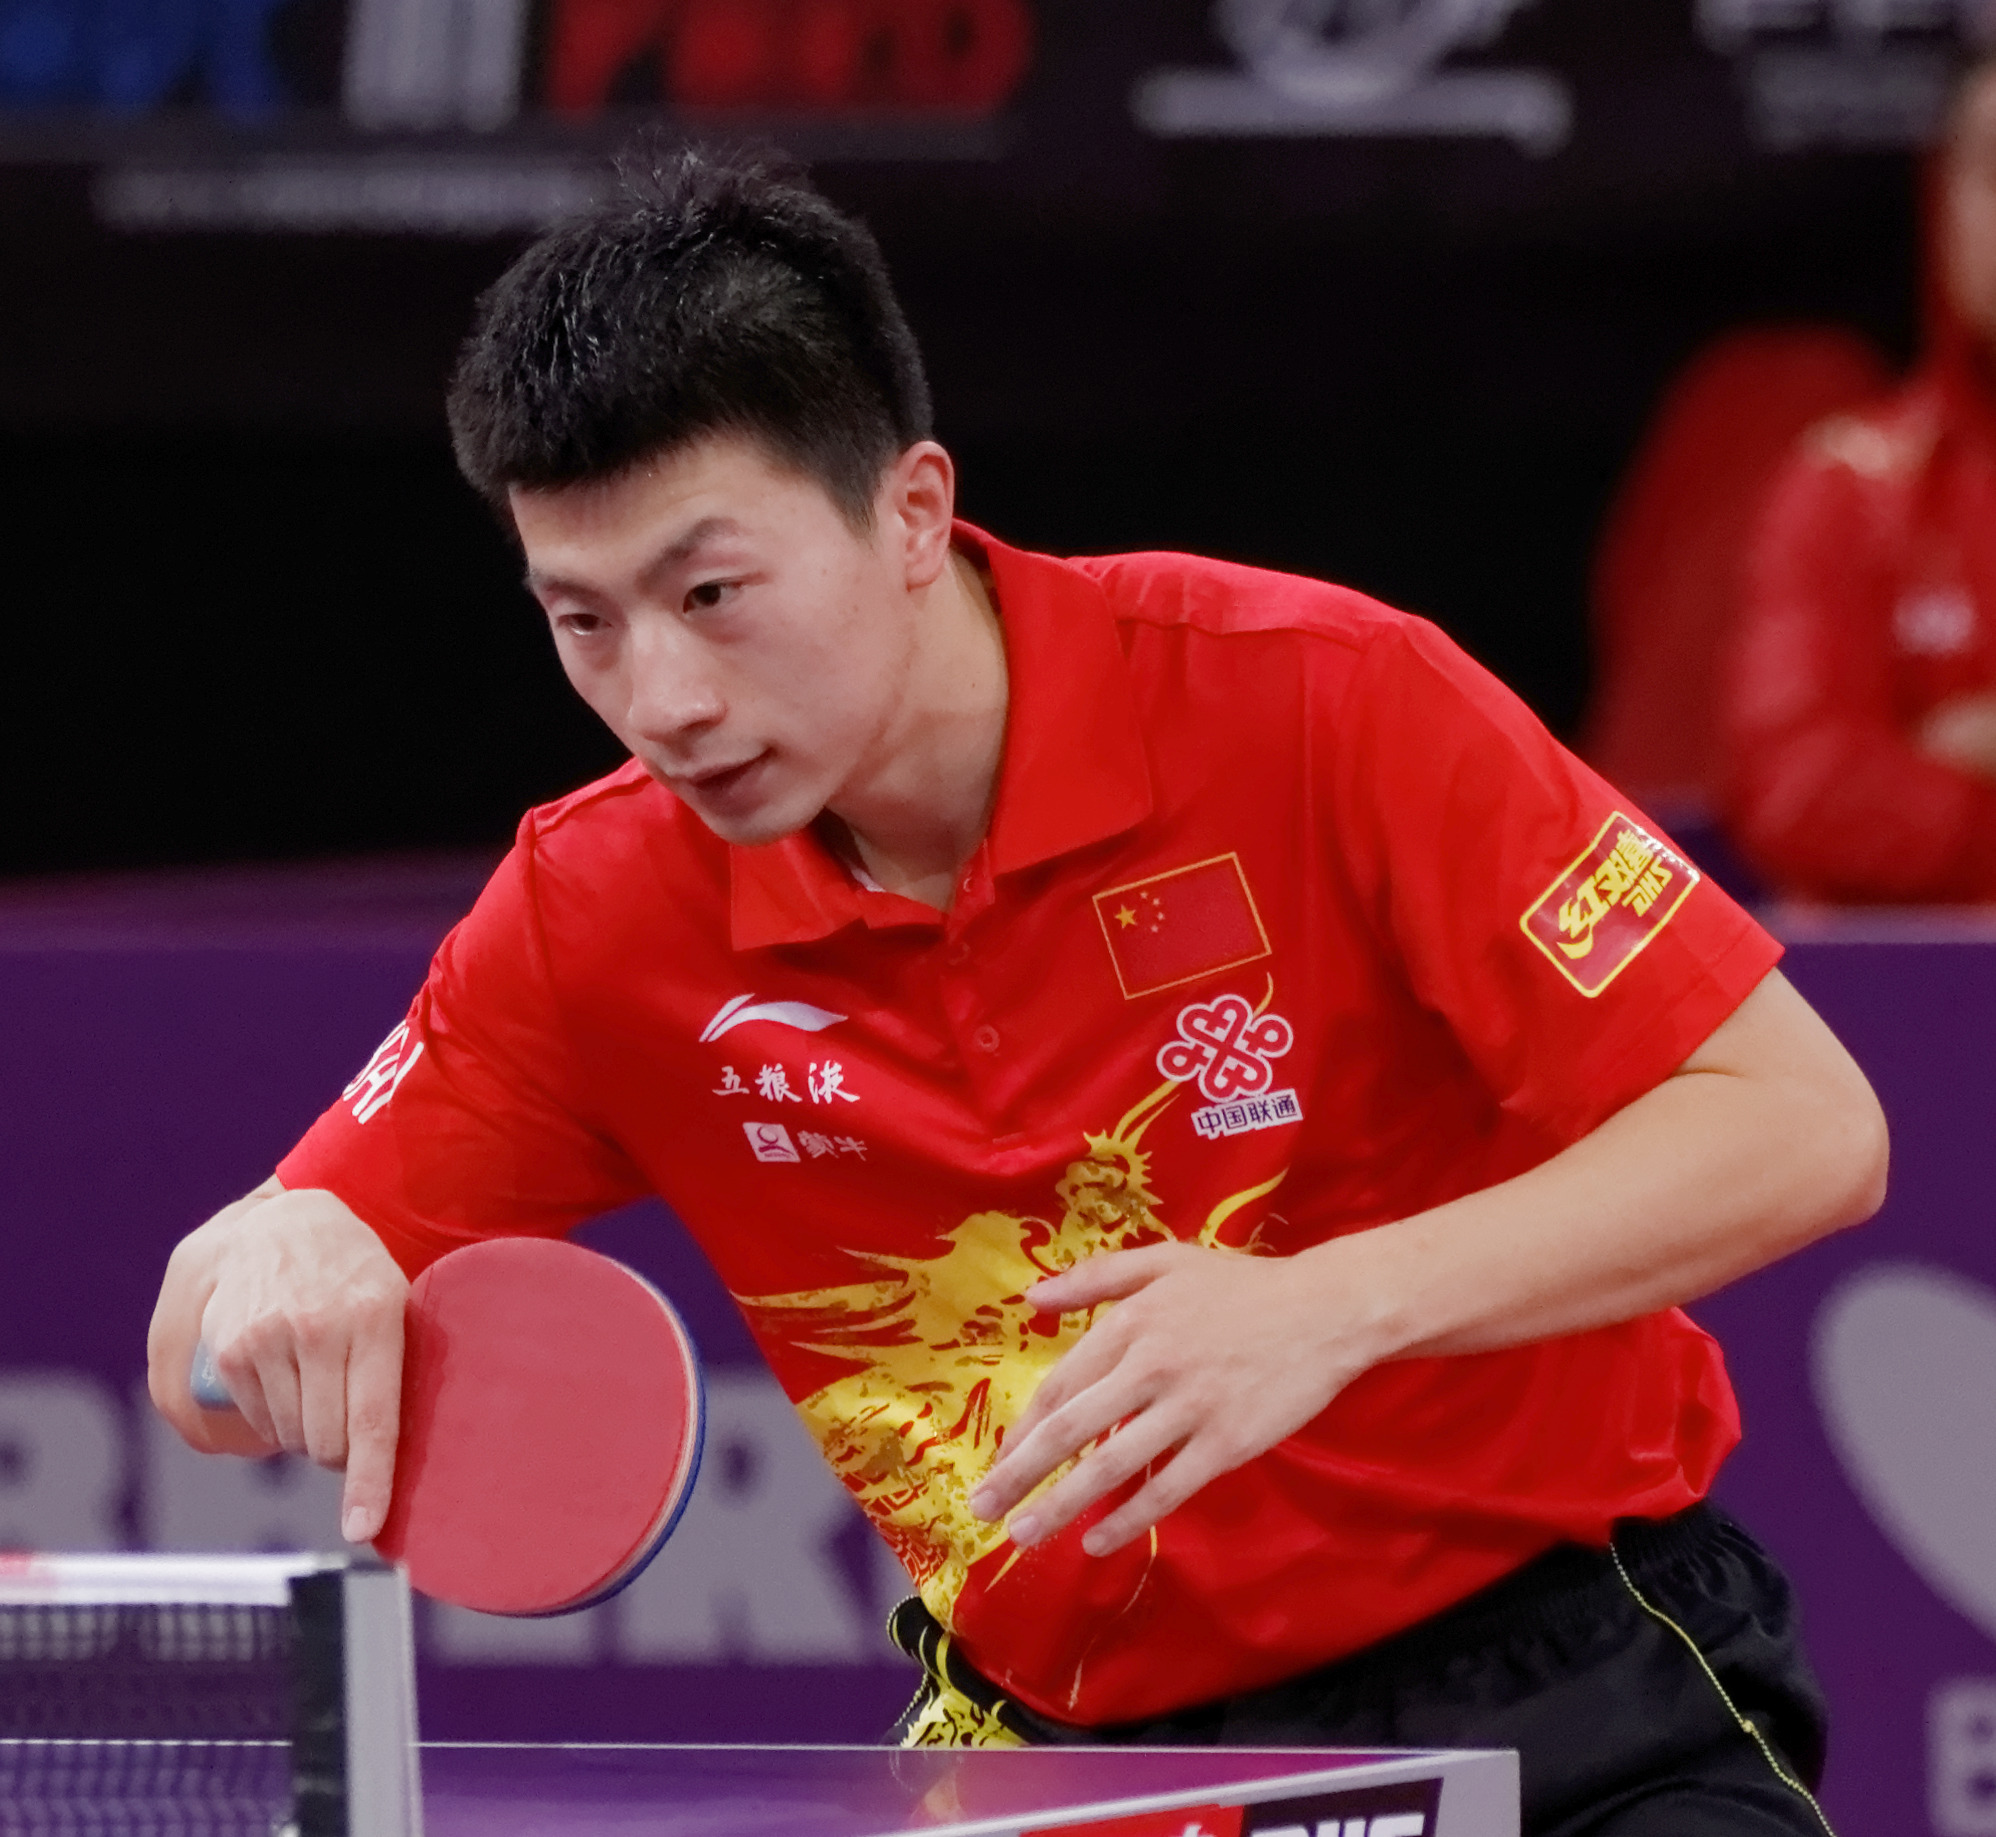 The 31-year old son of father (?) and mother(?) Ma Long in 2020 photo. Ma Long earned a  million dollar salary - leaving the net worth at 20 million in 2020